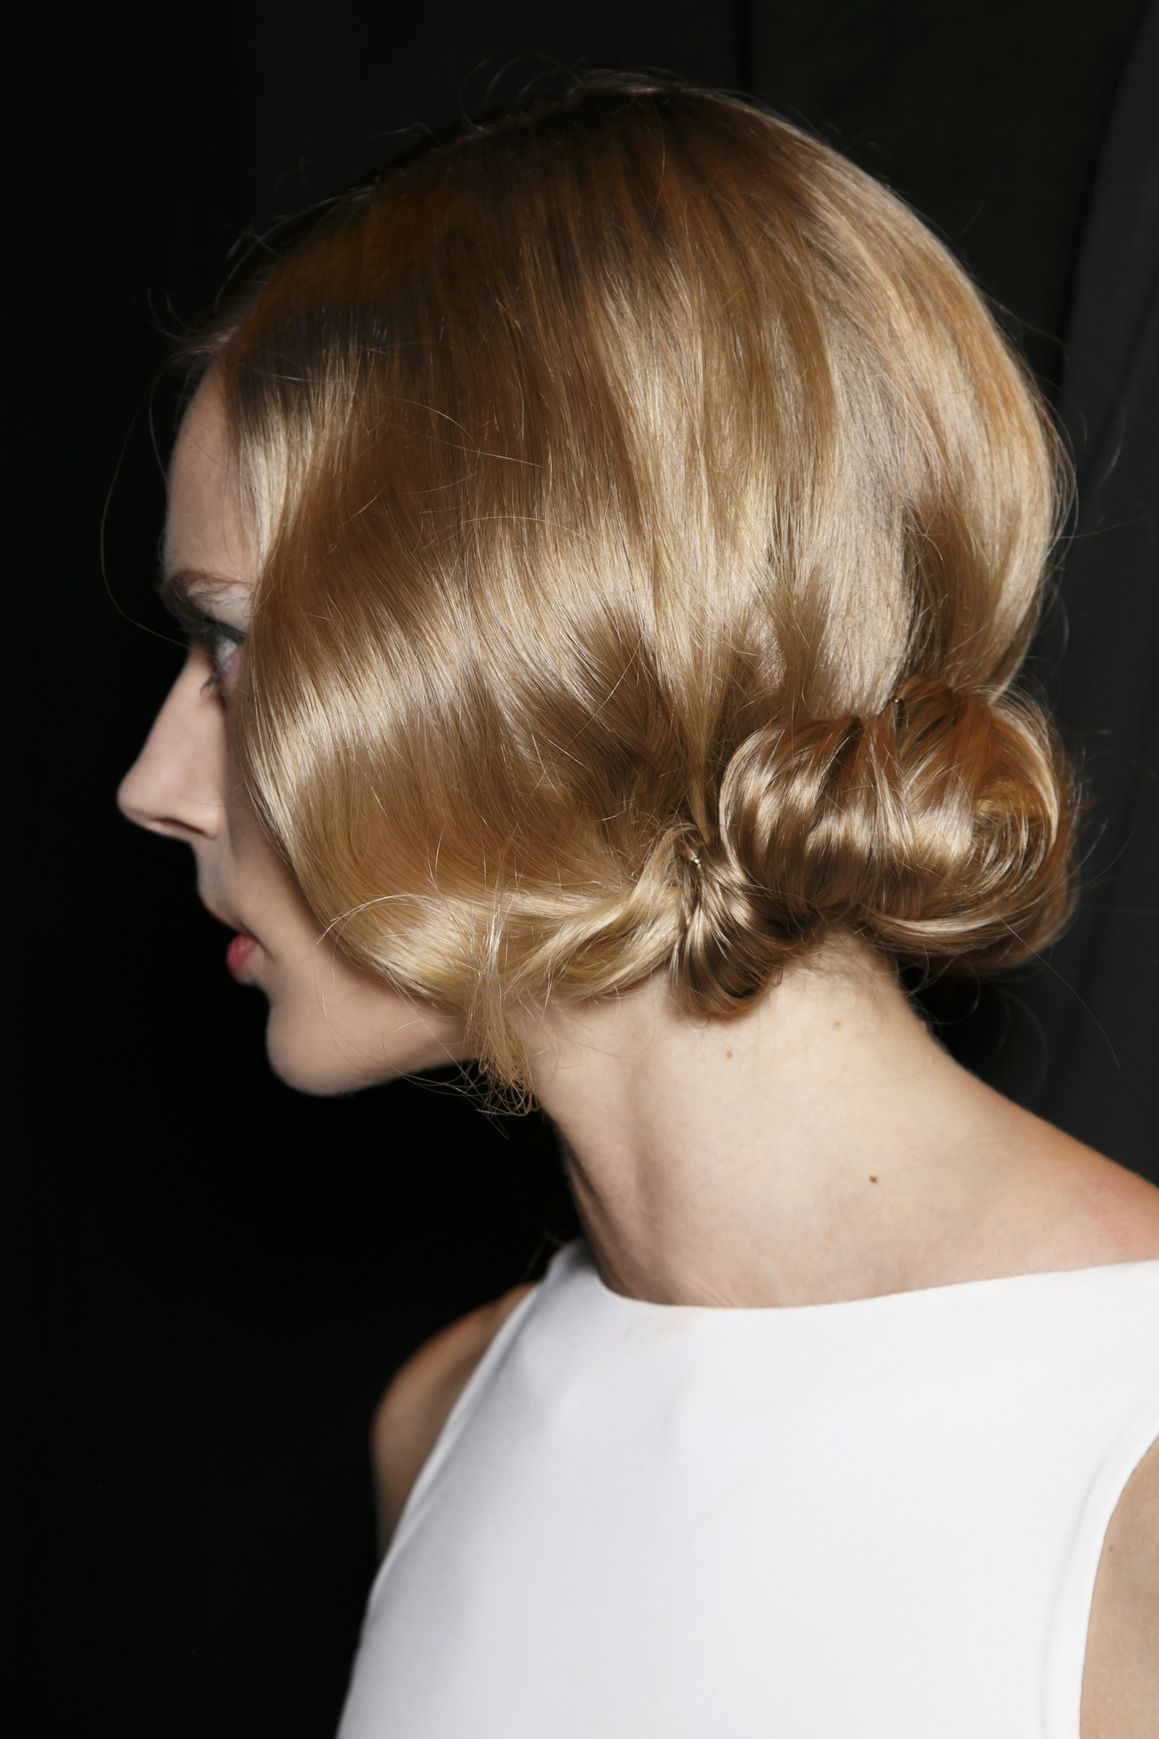 cool girl hairstyles to try immediately